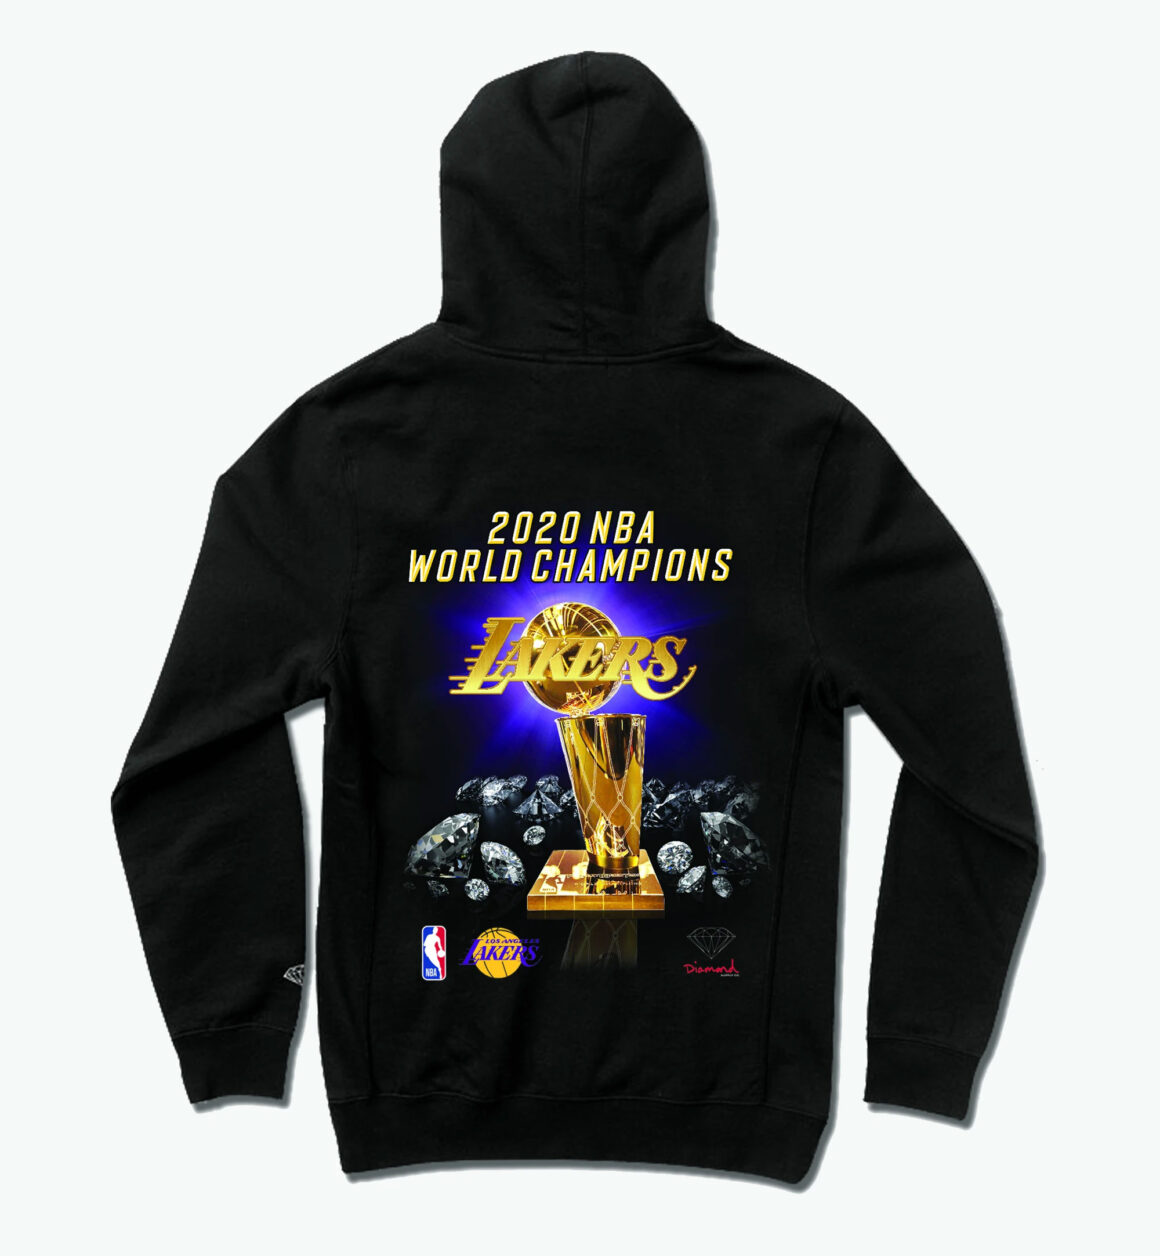 Diamond Supply Co. 2020 WORLD CHAMPION LOS ANGELES LAKERS TEE